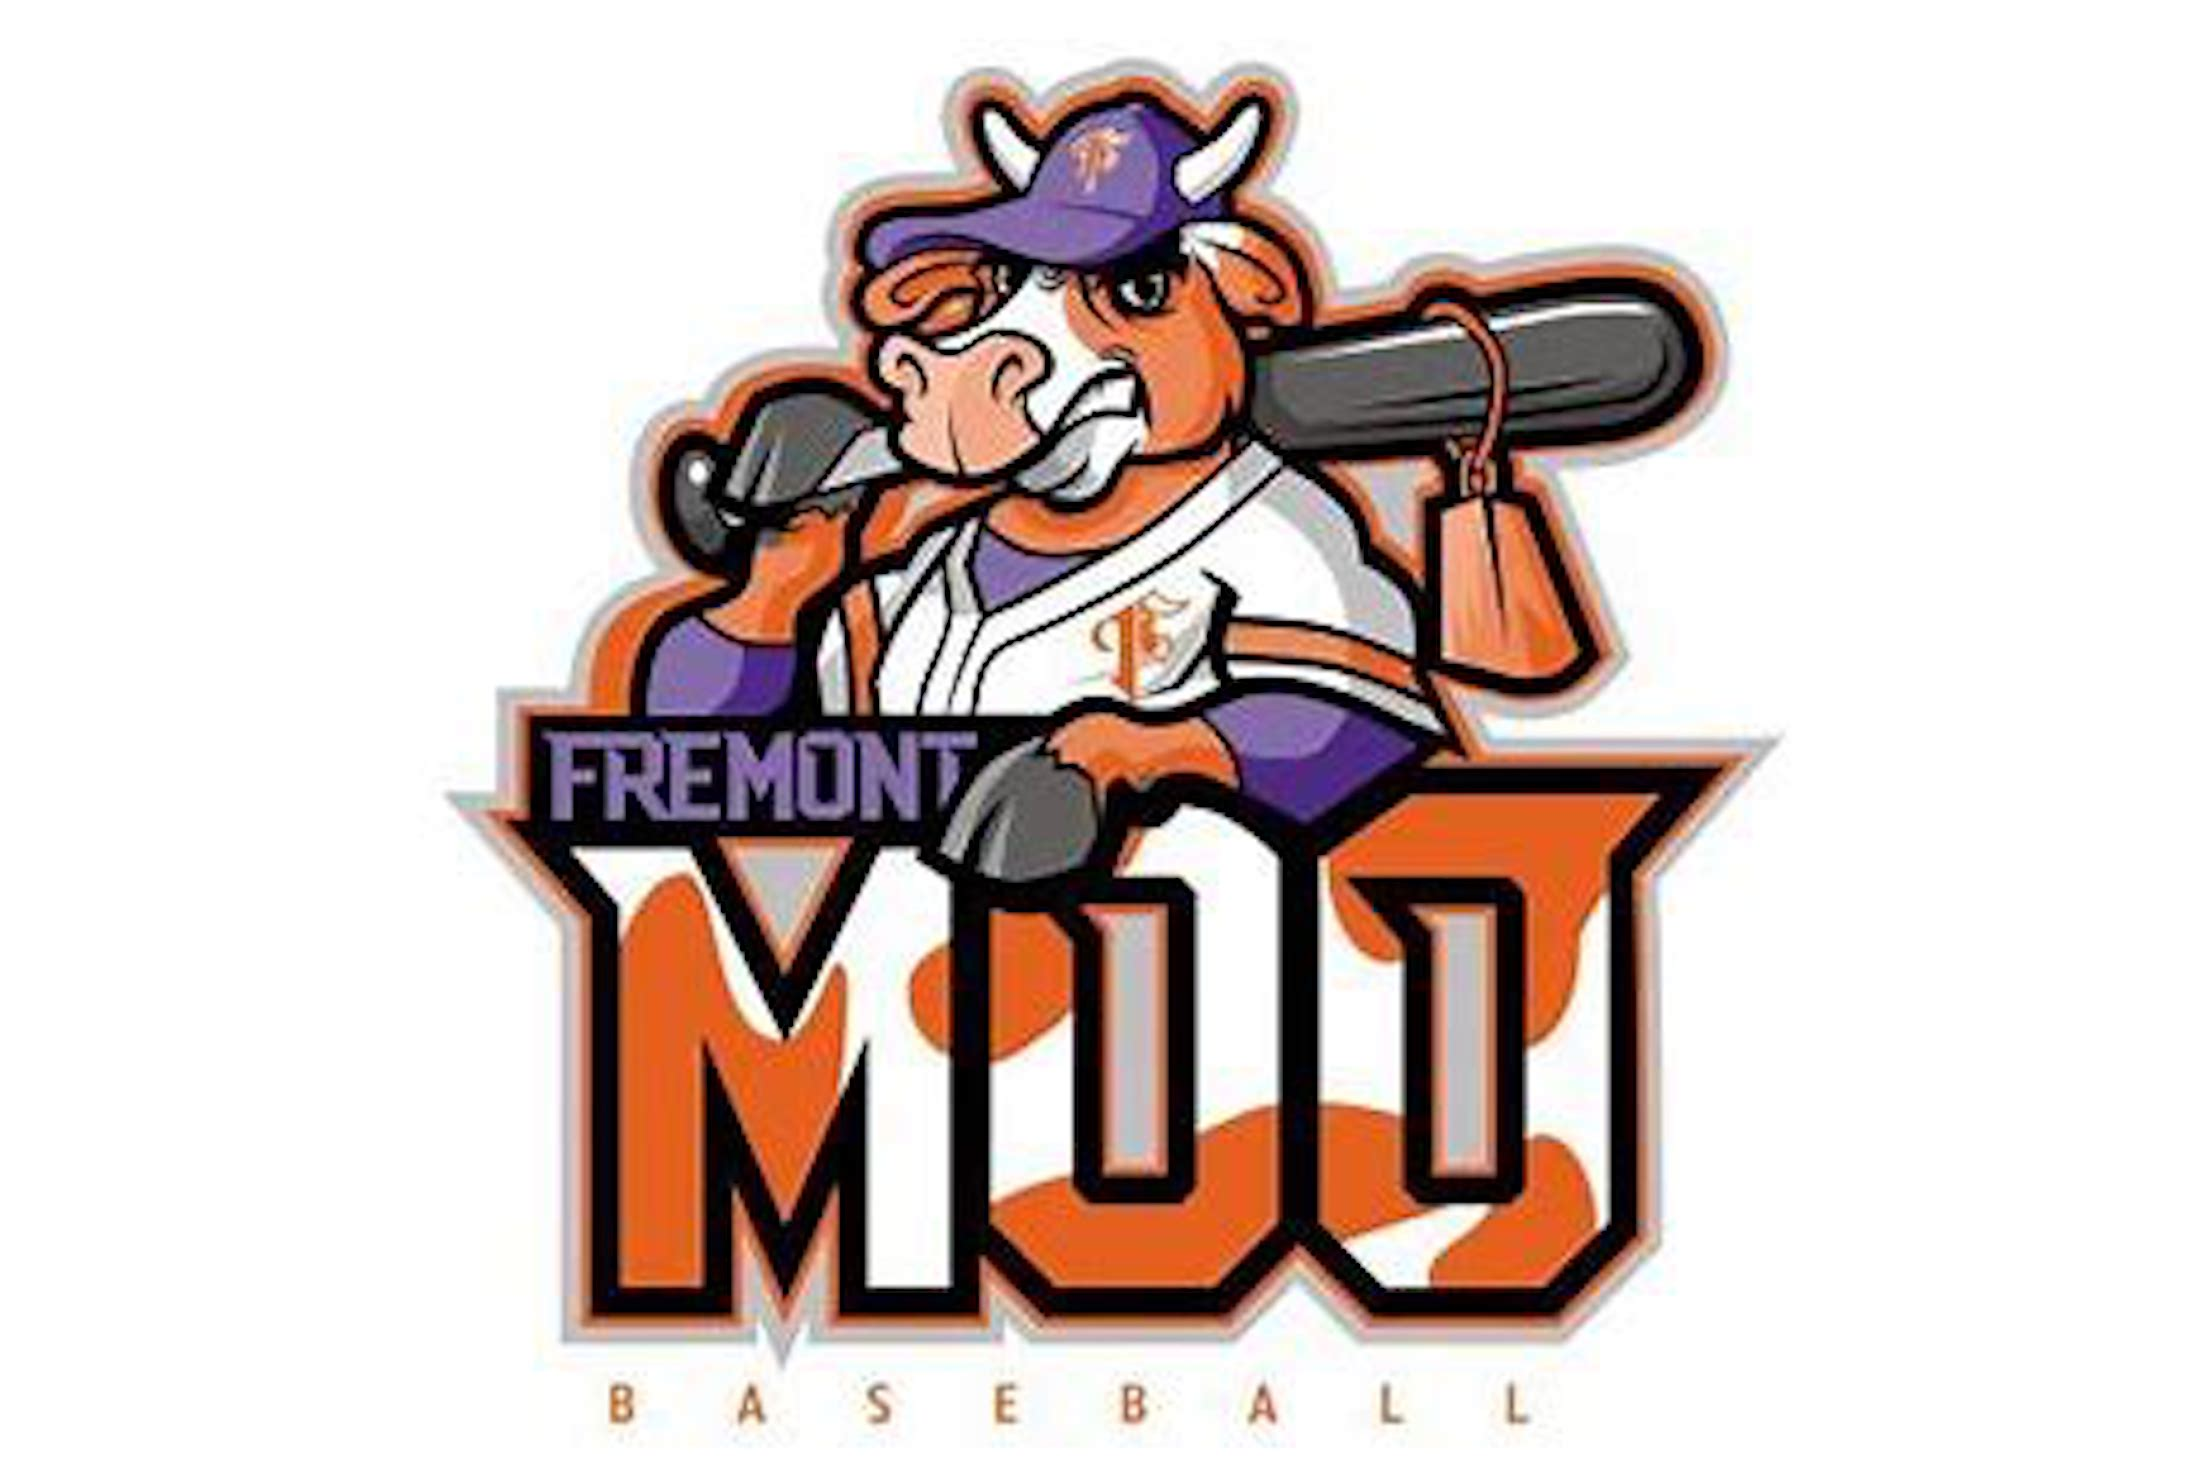 The Fremont Moo logo